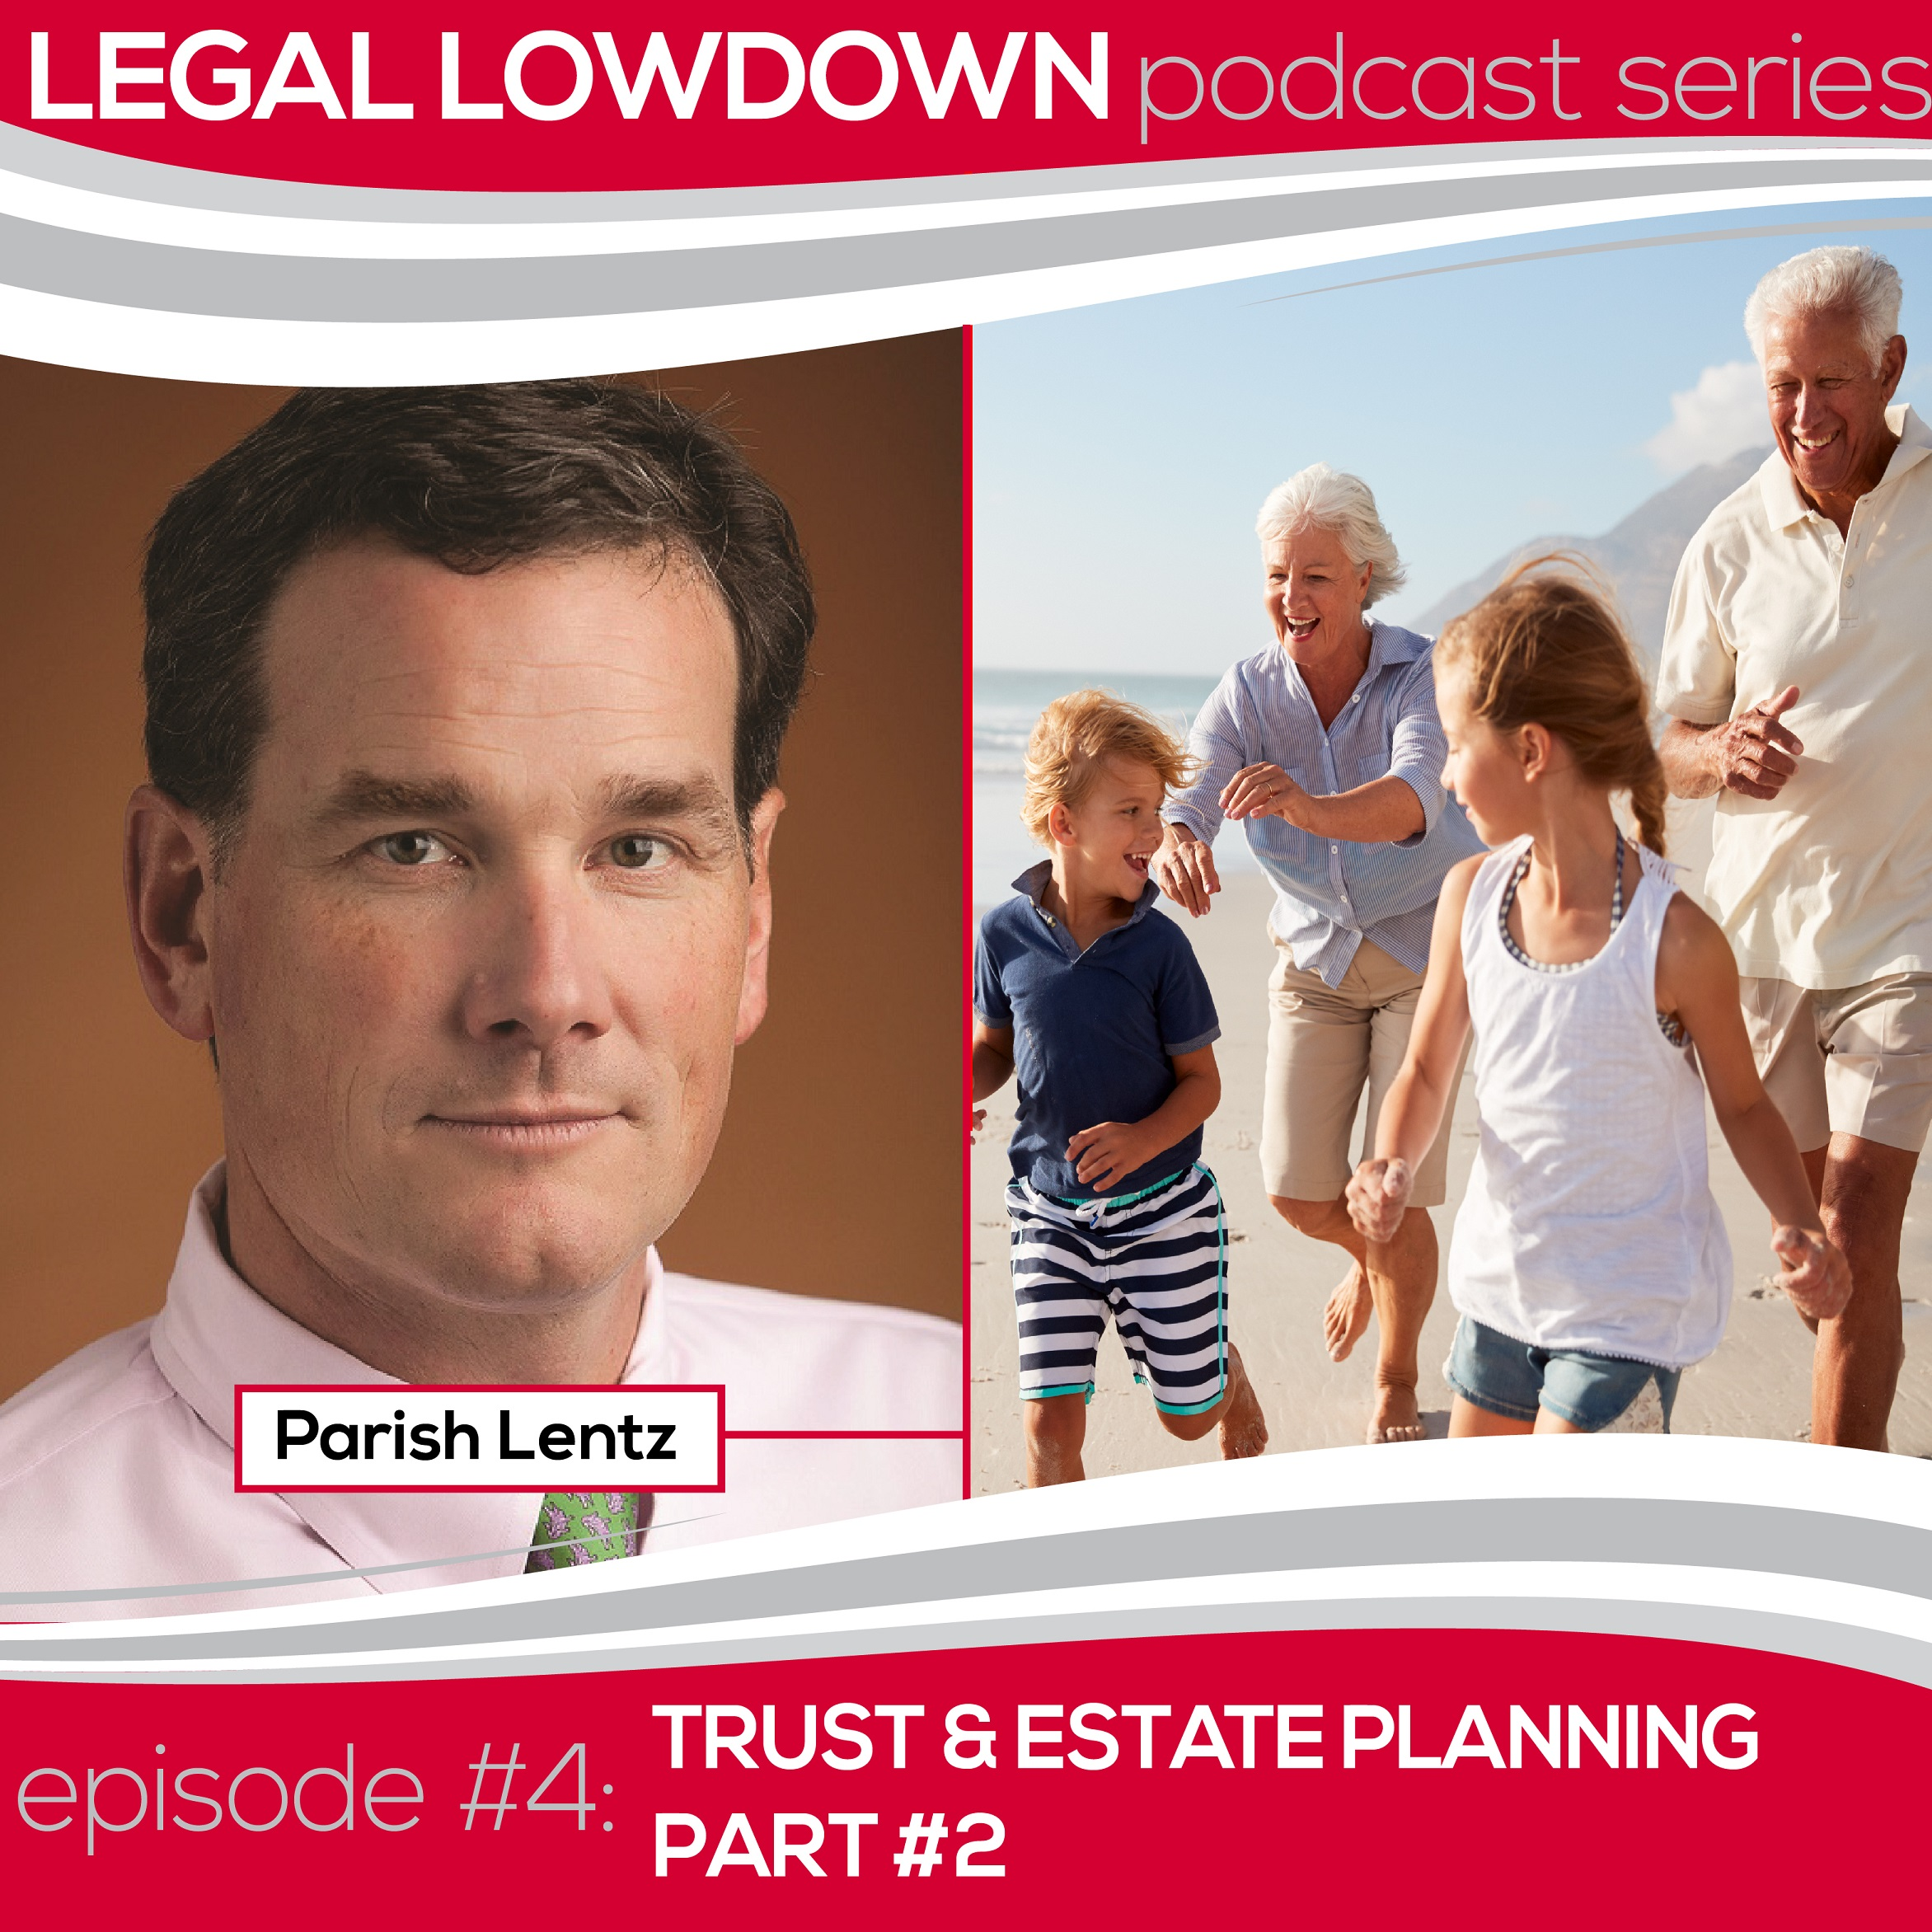 Legal Lowdown Podcast – Episode #4 – Trust & Estate Planning (Part #2)